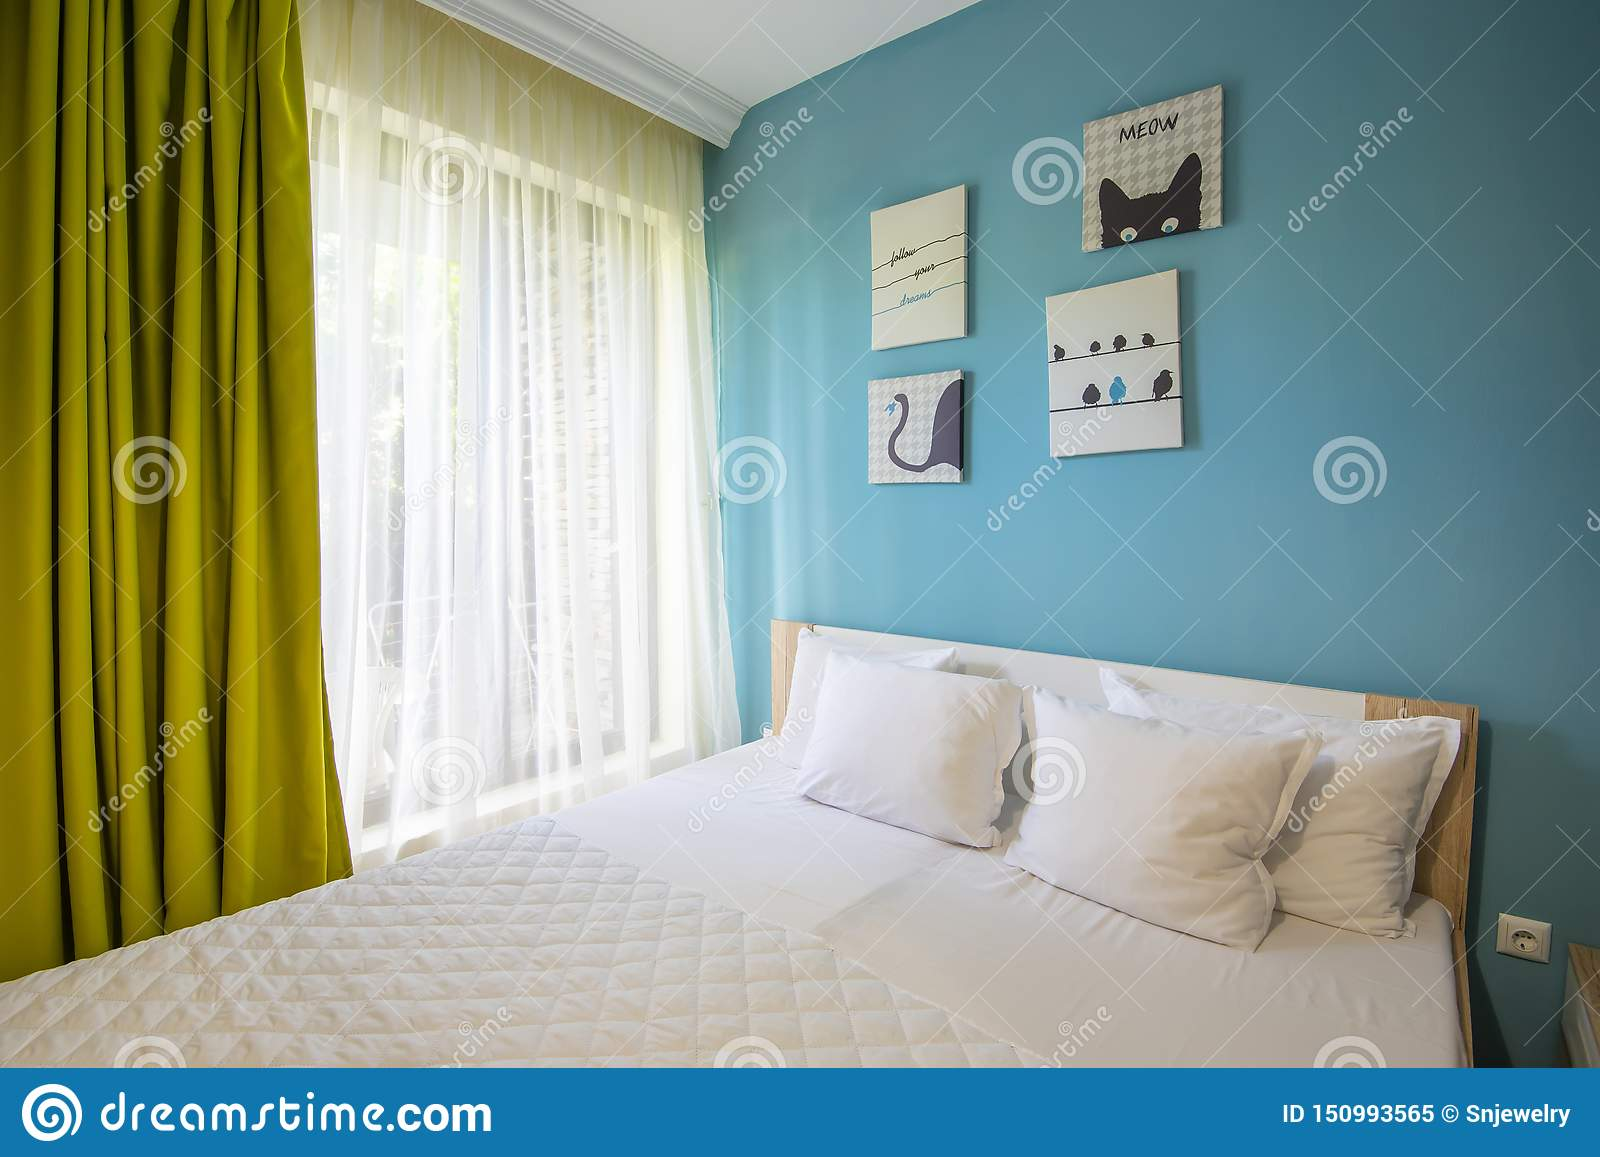 Hotel Bedroom With Blue Walls White Sheers Pillowcases And Sheets Green Curtains Stock Image Image Of Indoors Beautiful 150993565